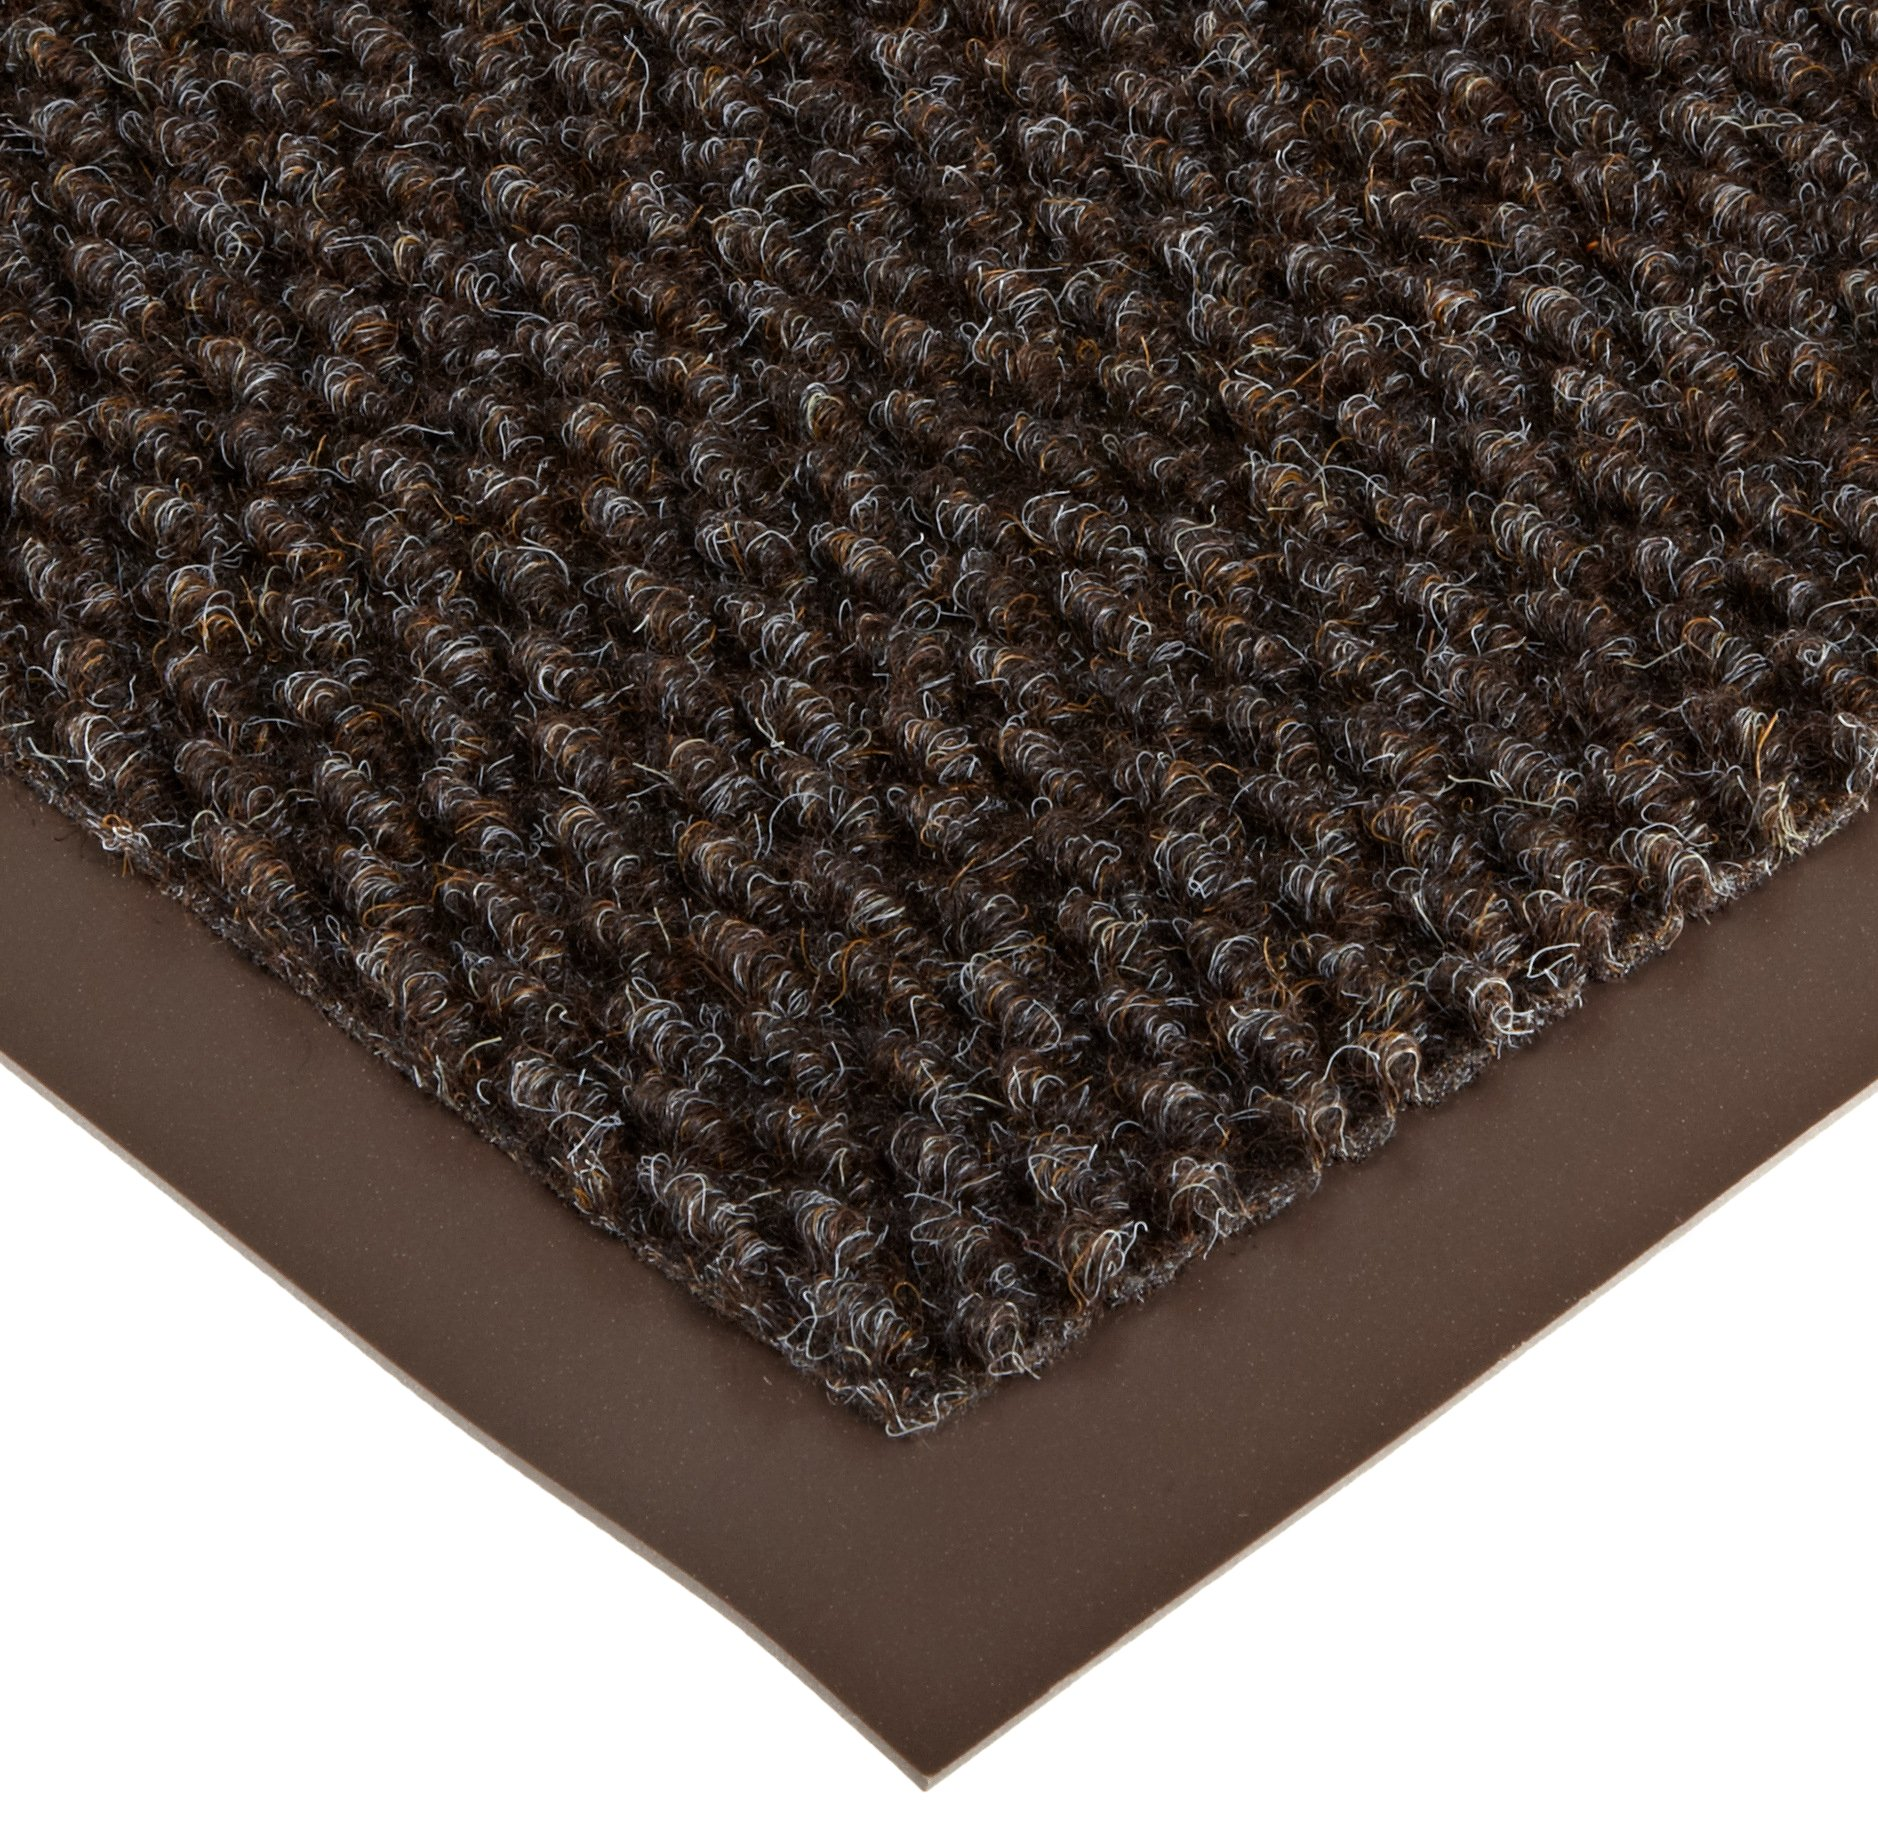 NoTrax AX-AY-ABHI-19843Notrax 136 Polynib Entrance Mat, for Lobbies and Indoor Entranceways, 2' Width x 3' Length x 1/4'' Thickness, Brown